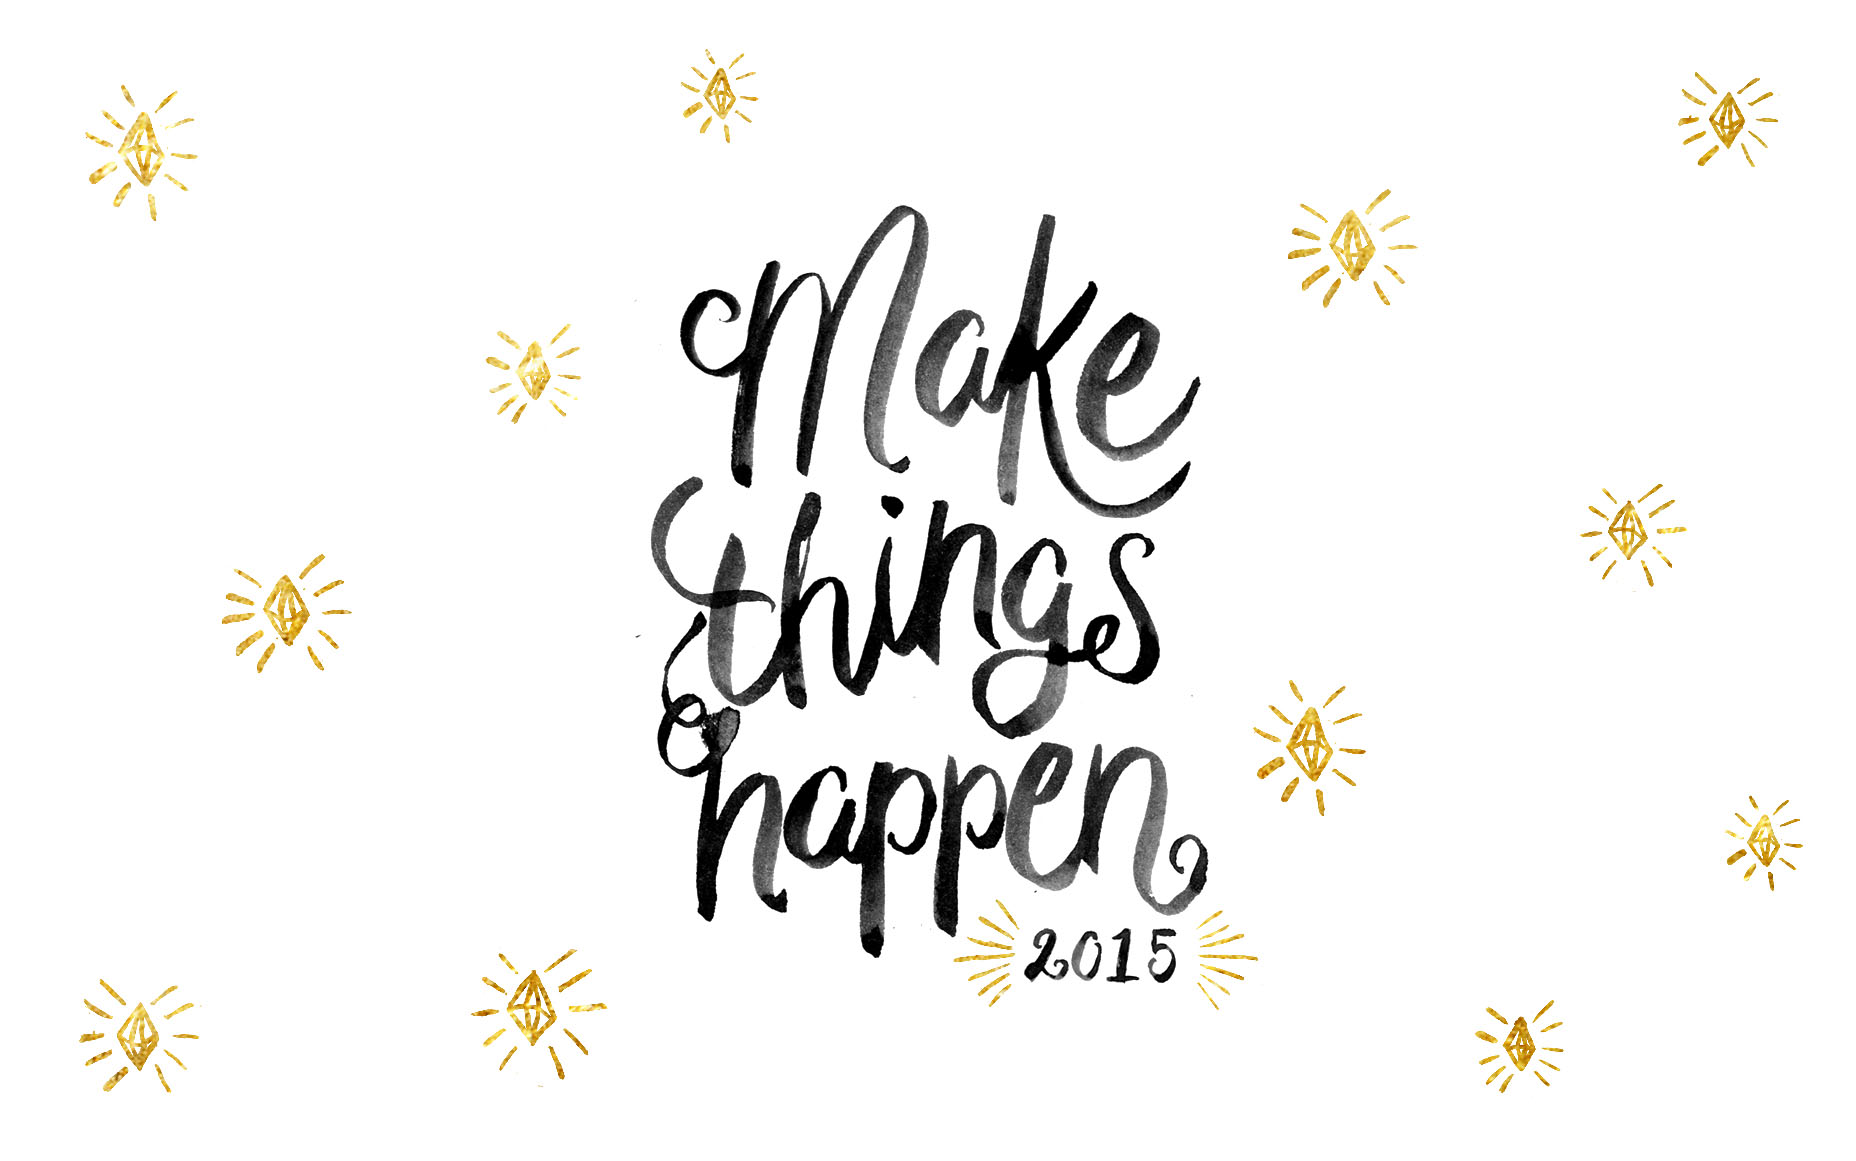 Fall Desktop Wallpaper With Crush Quotes Make Things Happen New Year Freebies Lanalou Style